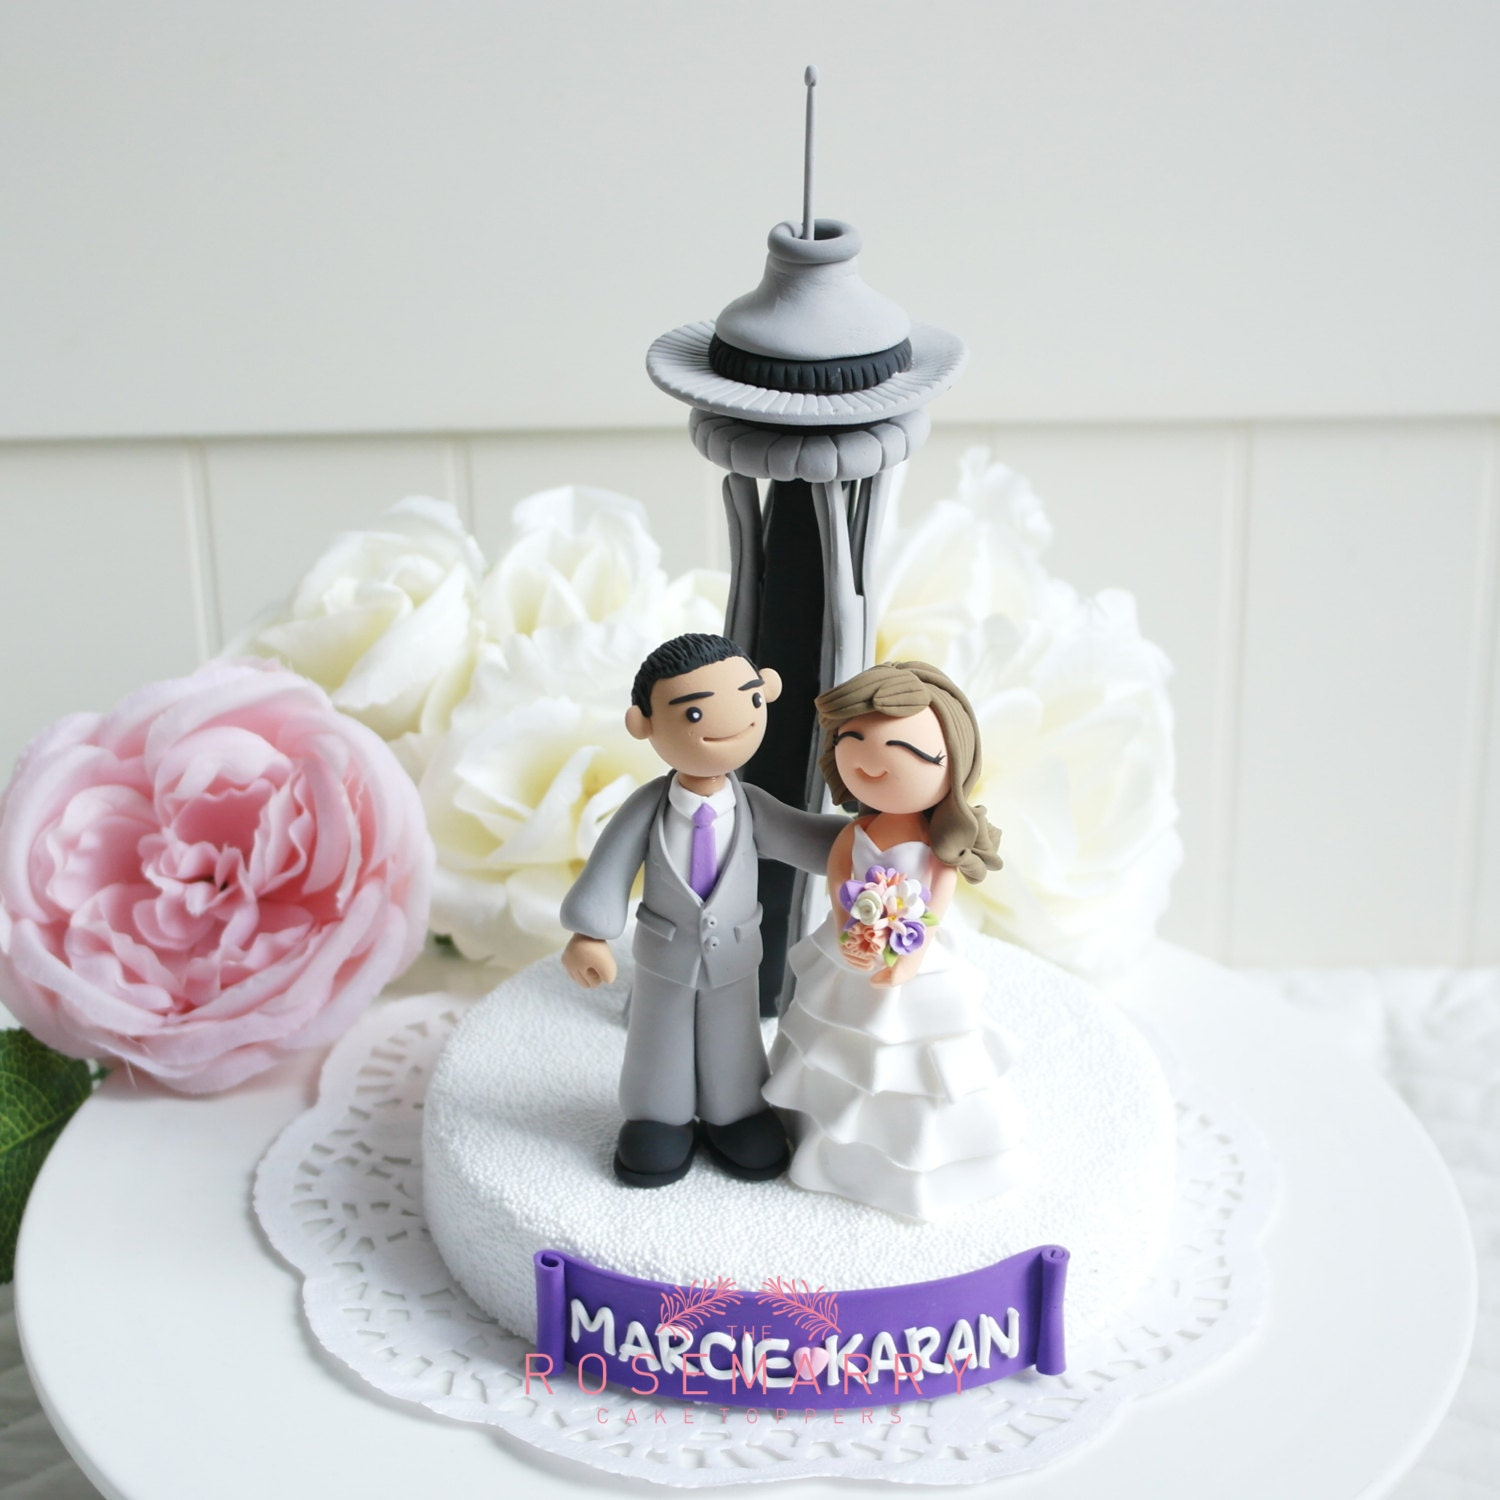 Custom Wedding Cake Topper at Space needle in Seattle